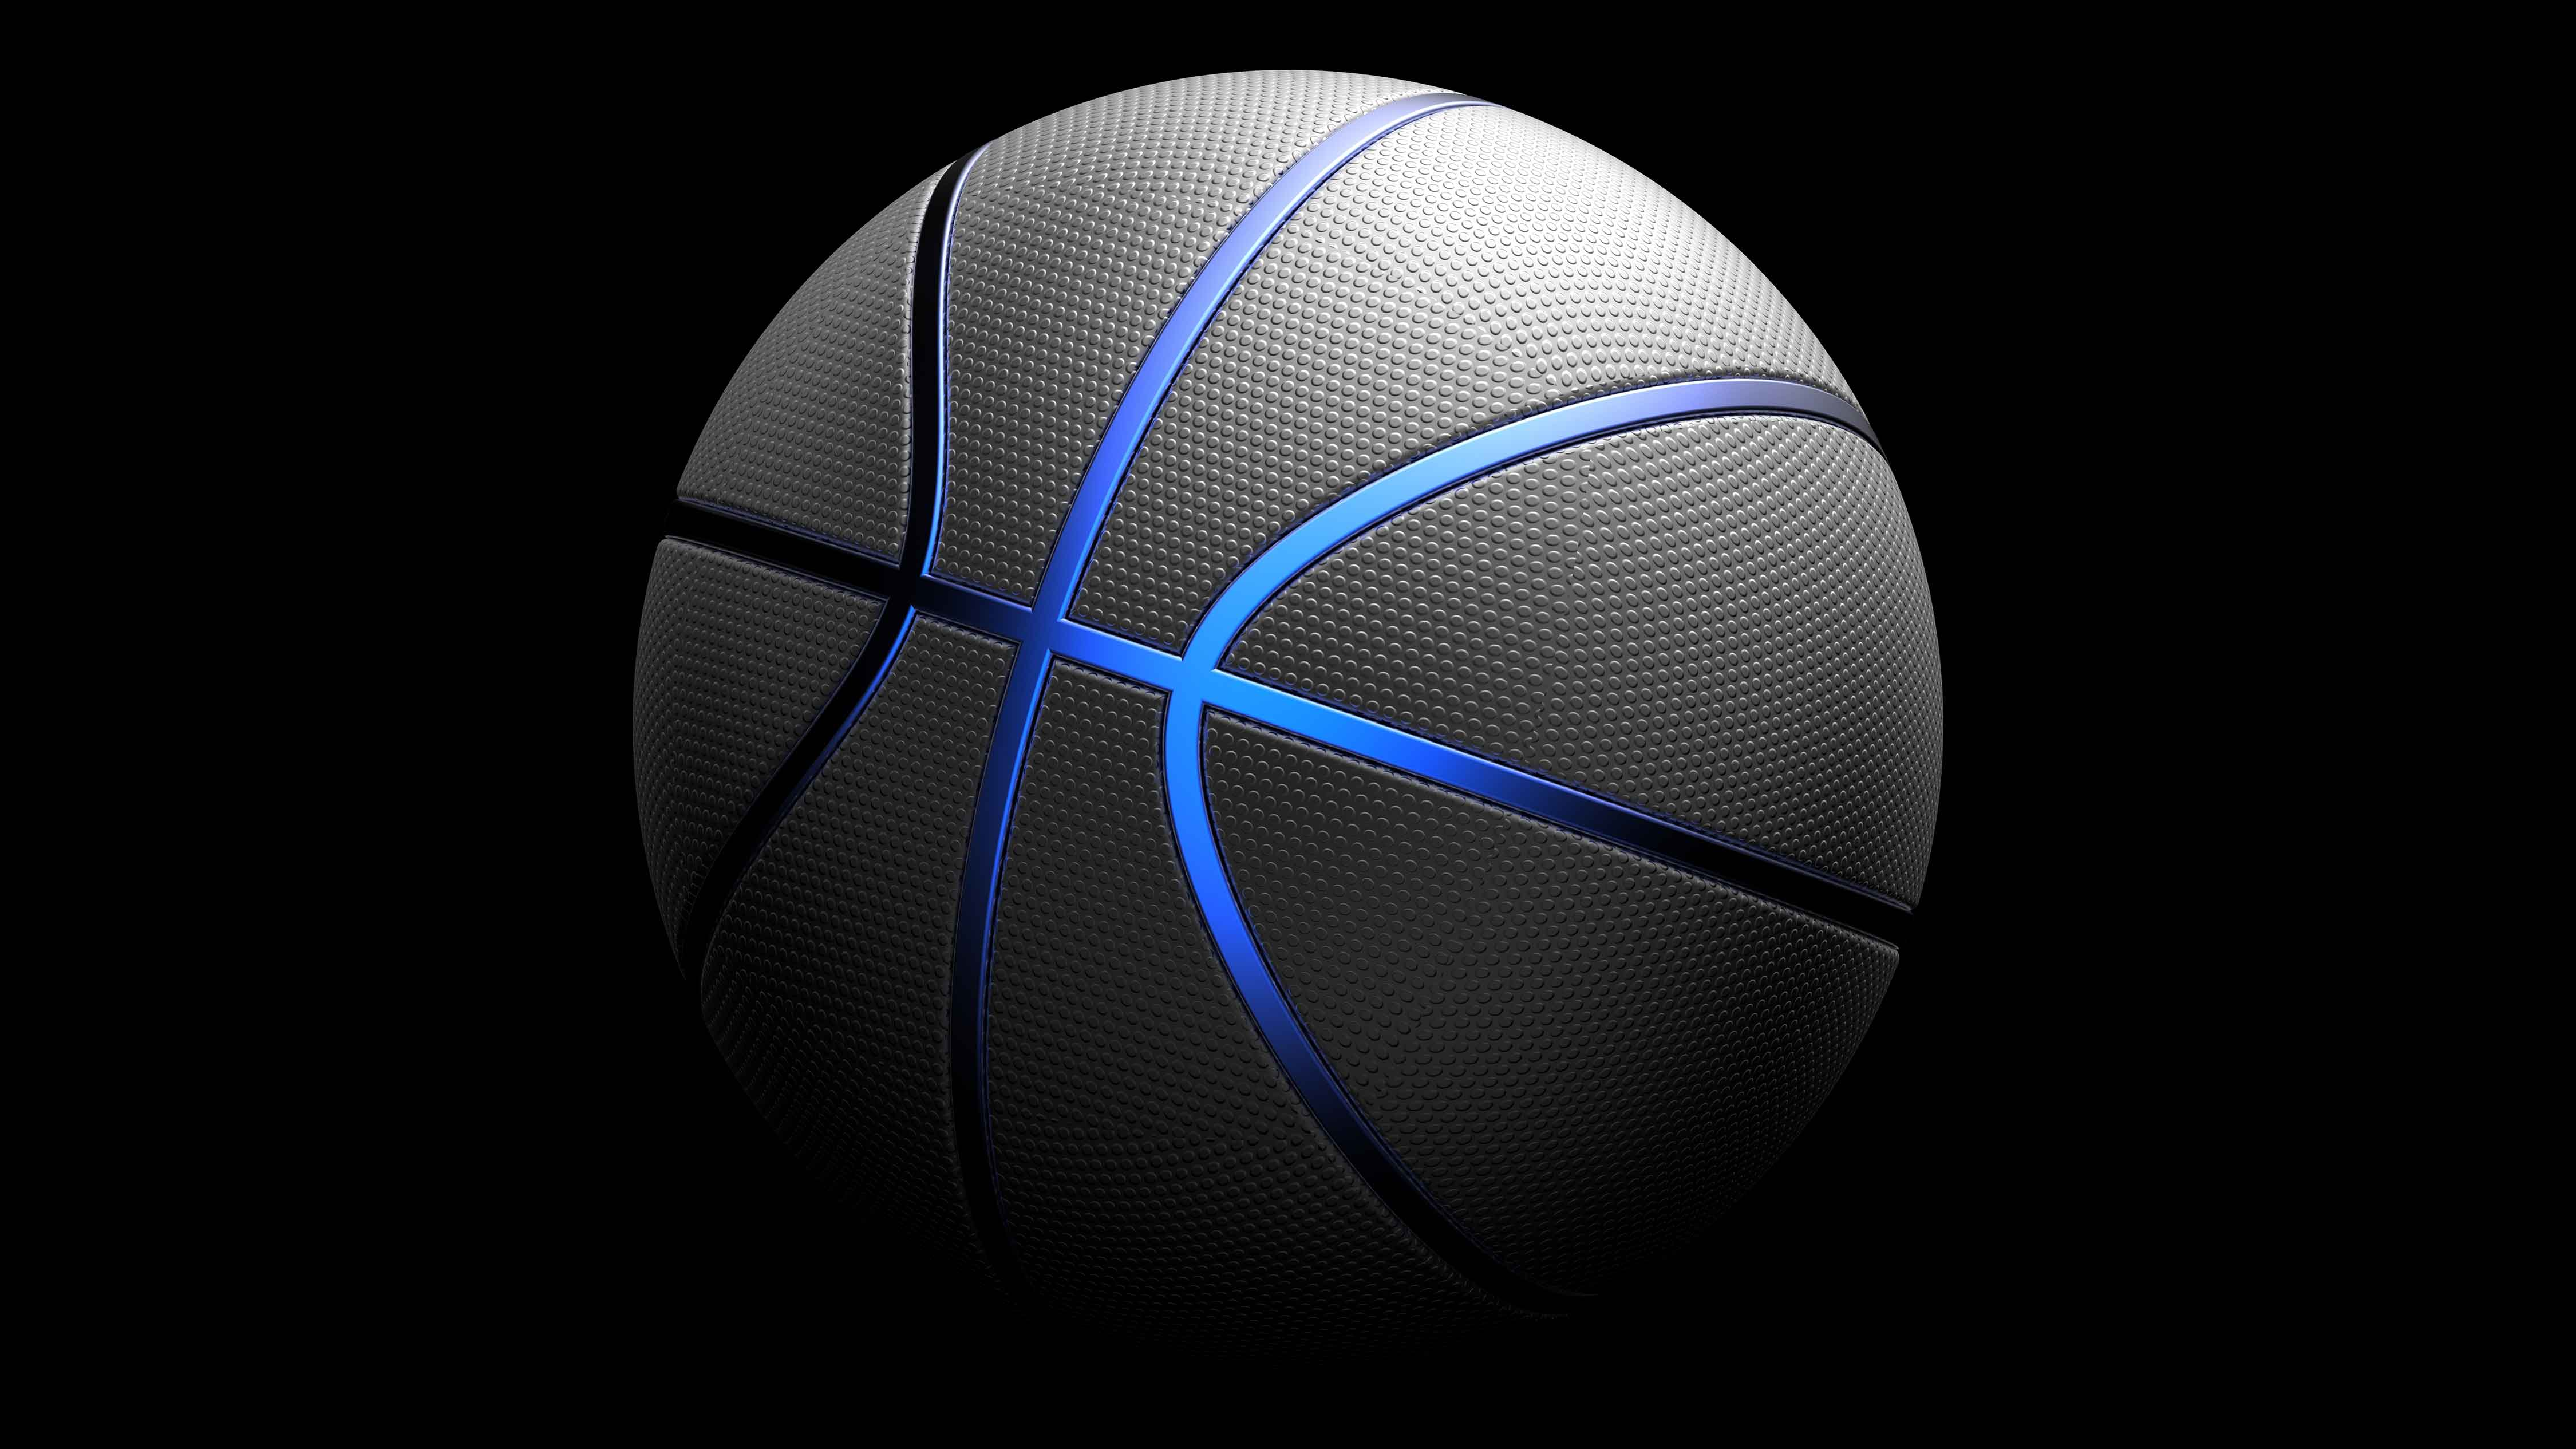 Sports Admin Club hosting 3-on-3 hoops tourney March 7